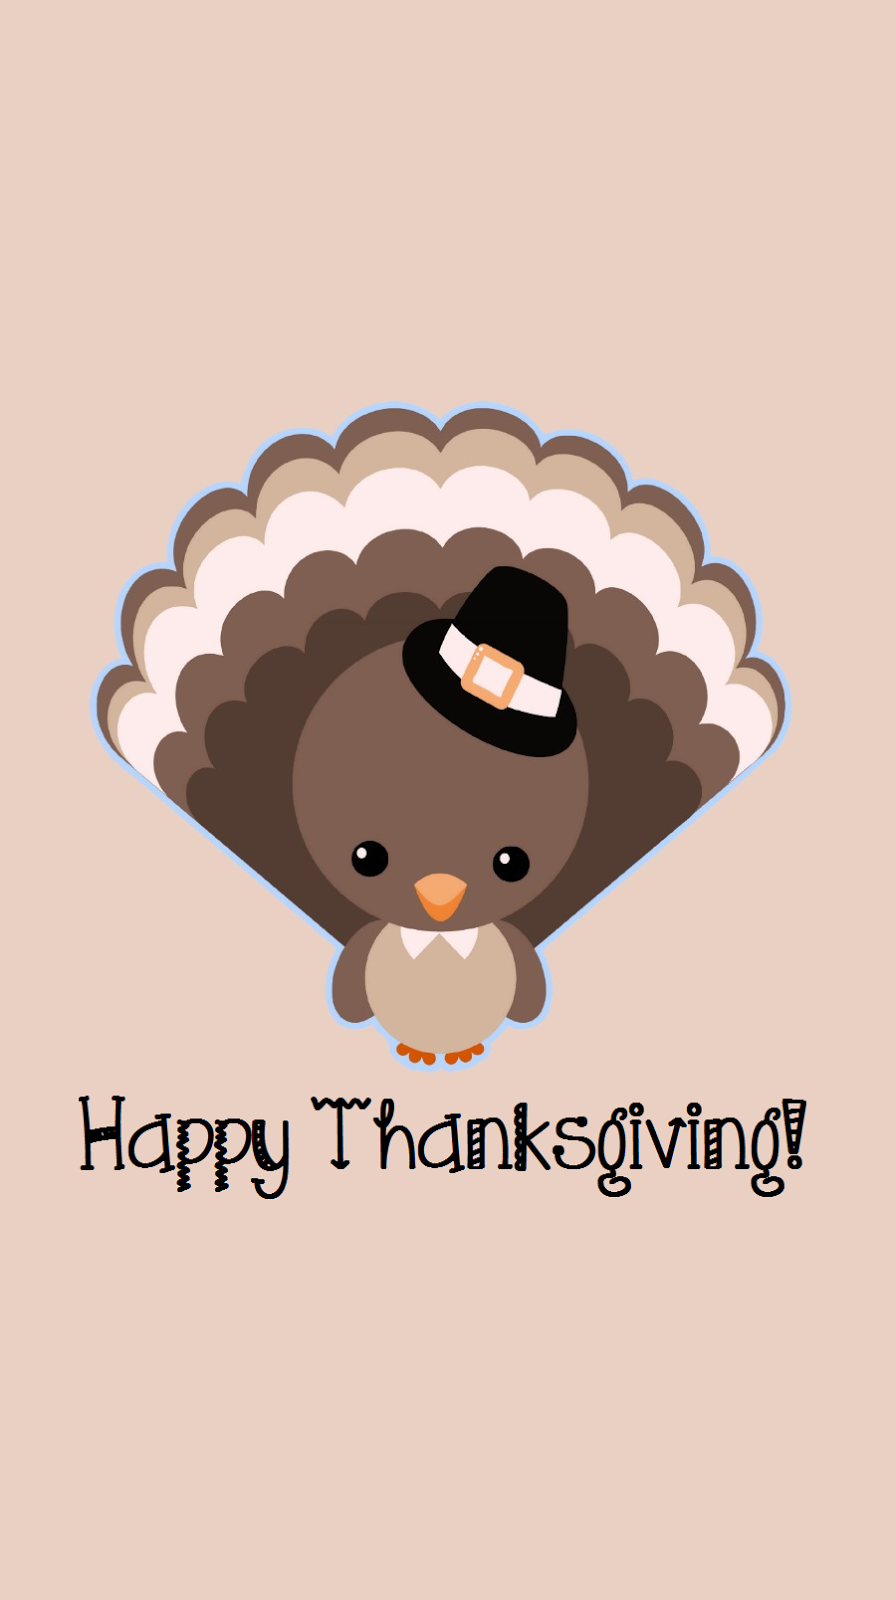 Thanksgiving Wallpaper Thanksgiving Iphone Wallpaper Phone